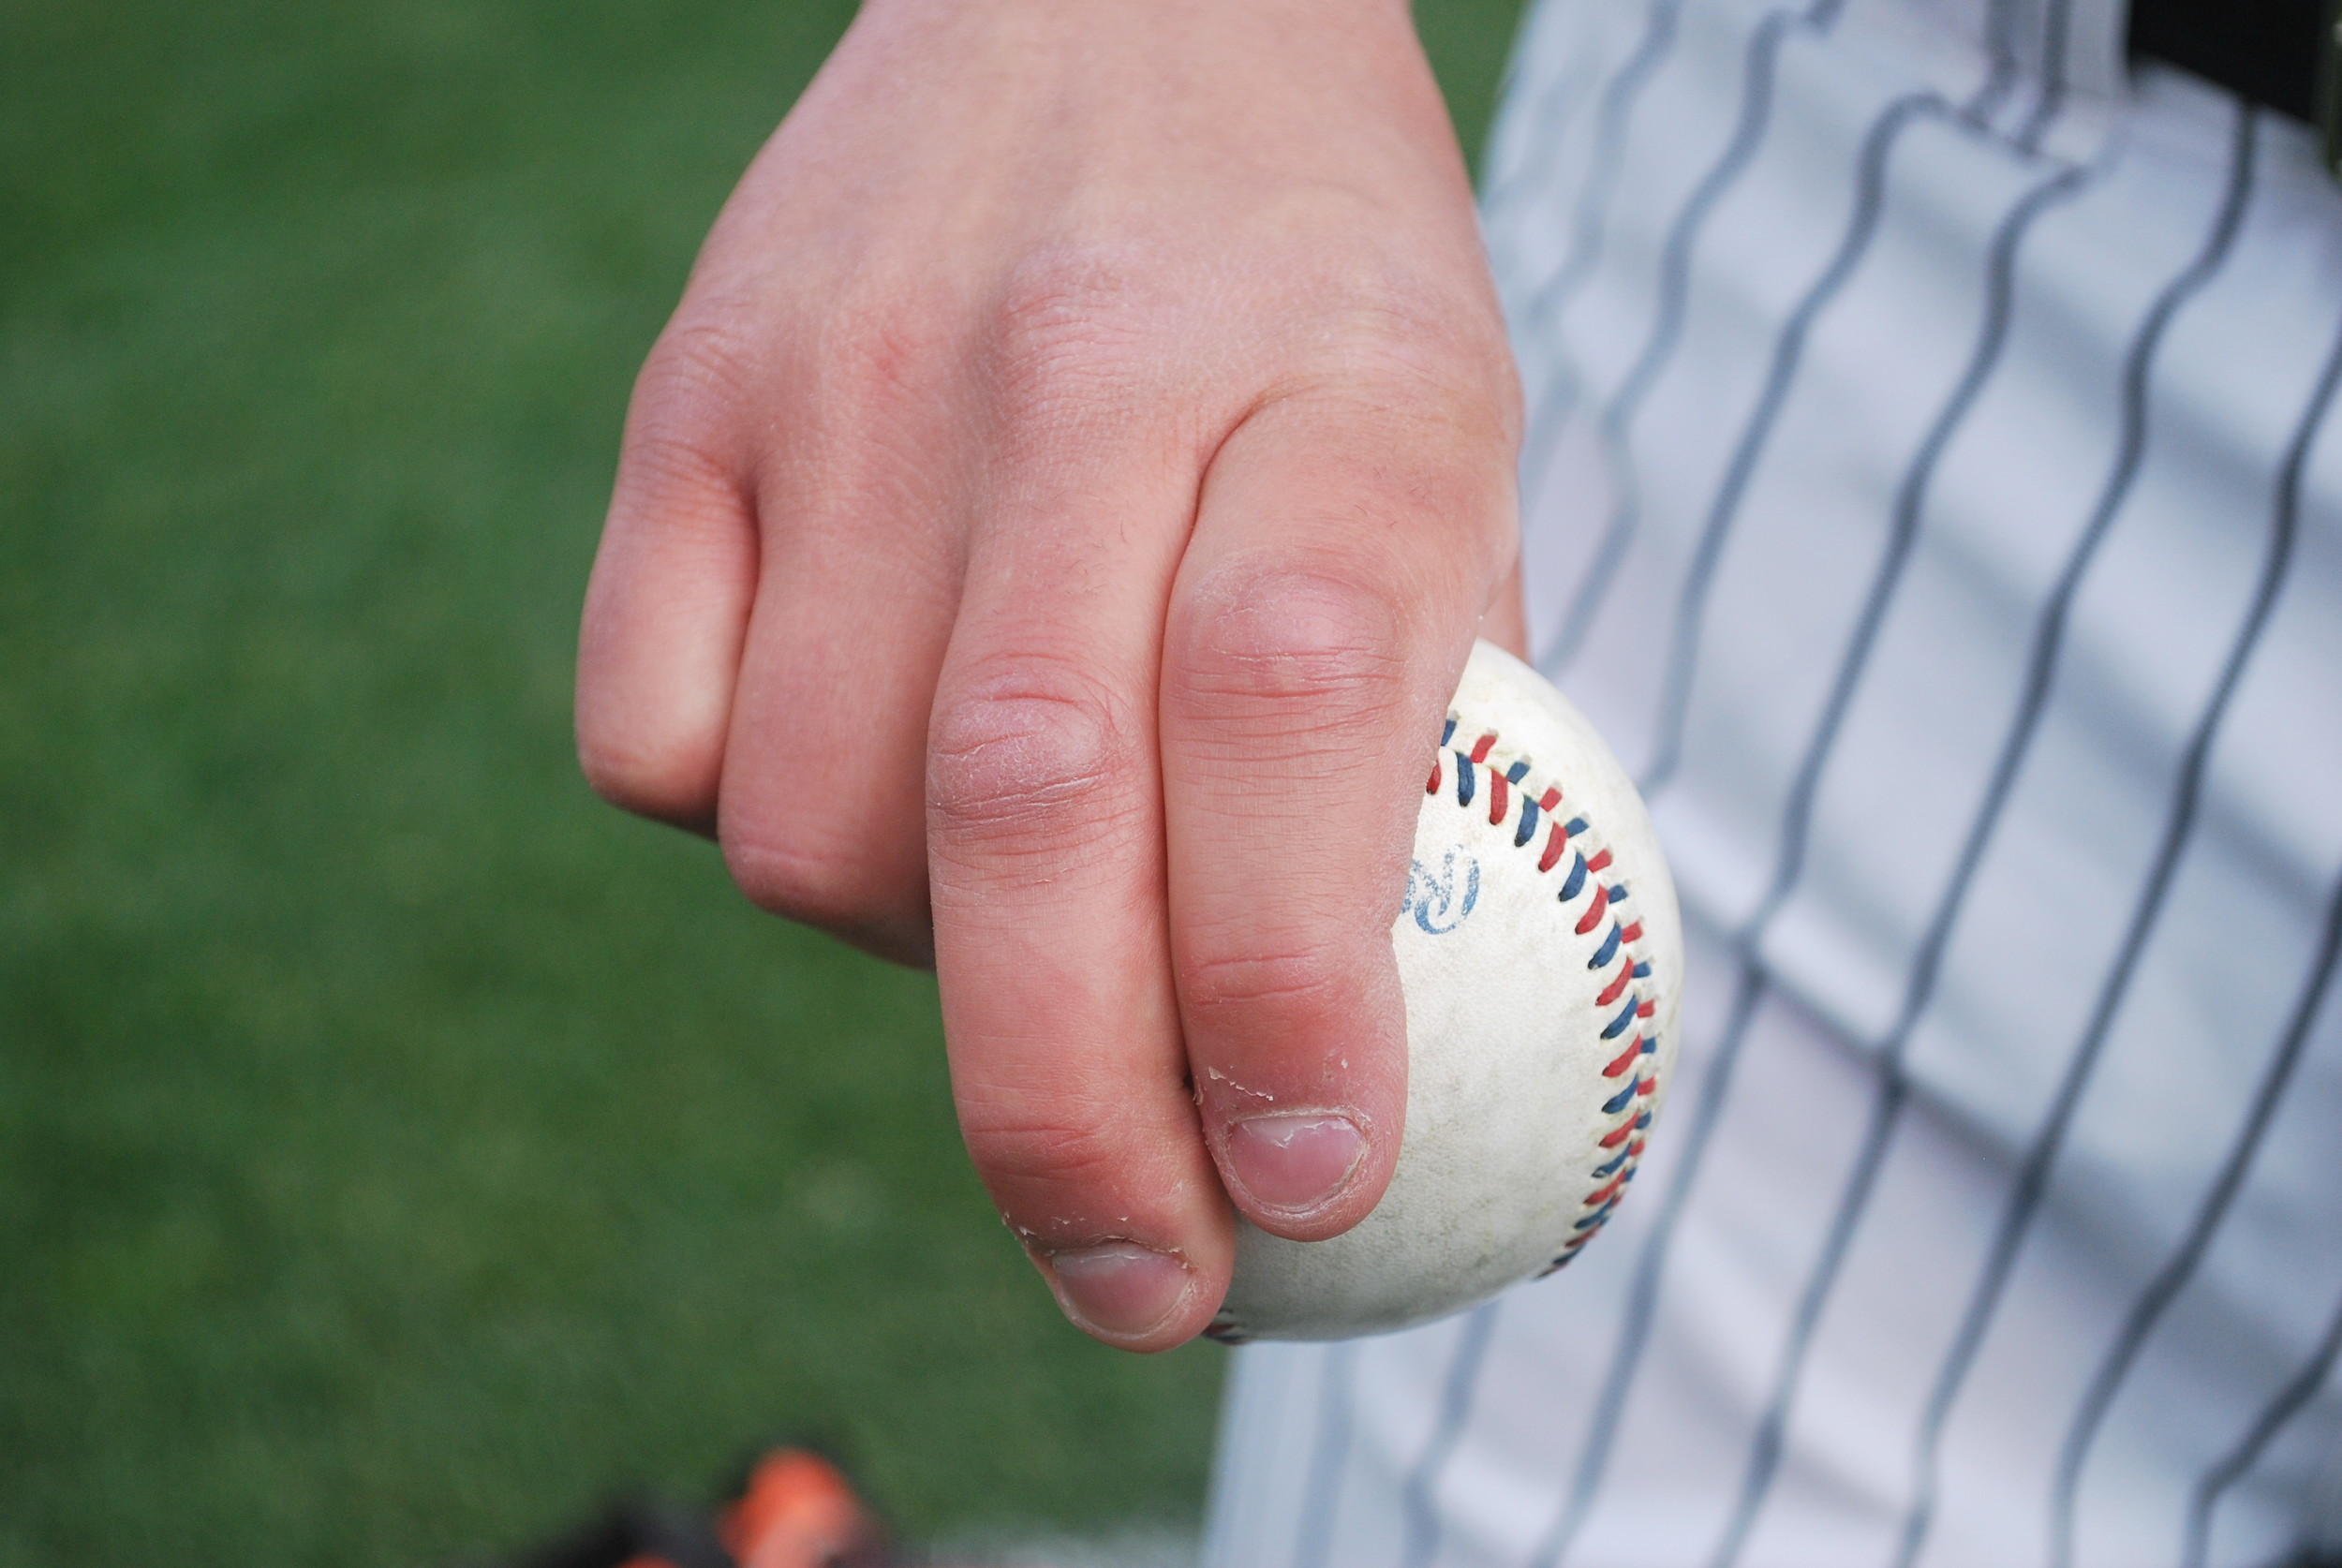 Long Island Ducks right-hander Keith Couch demonstrated how he grips his breaking ball.